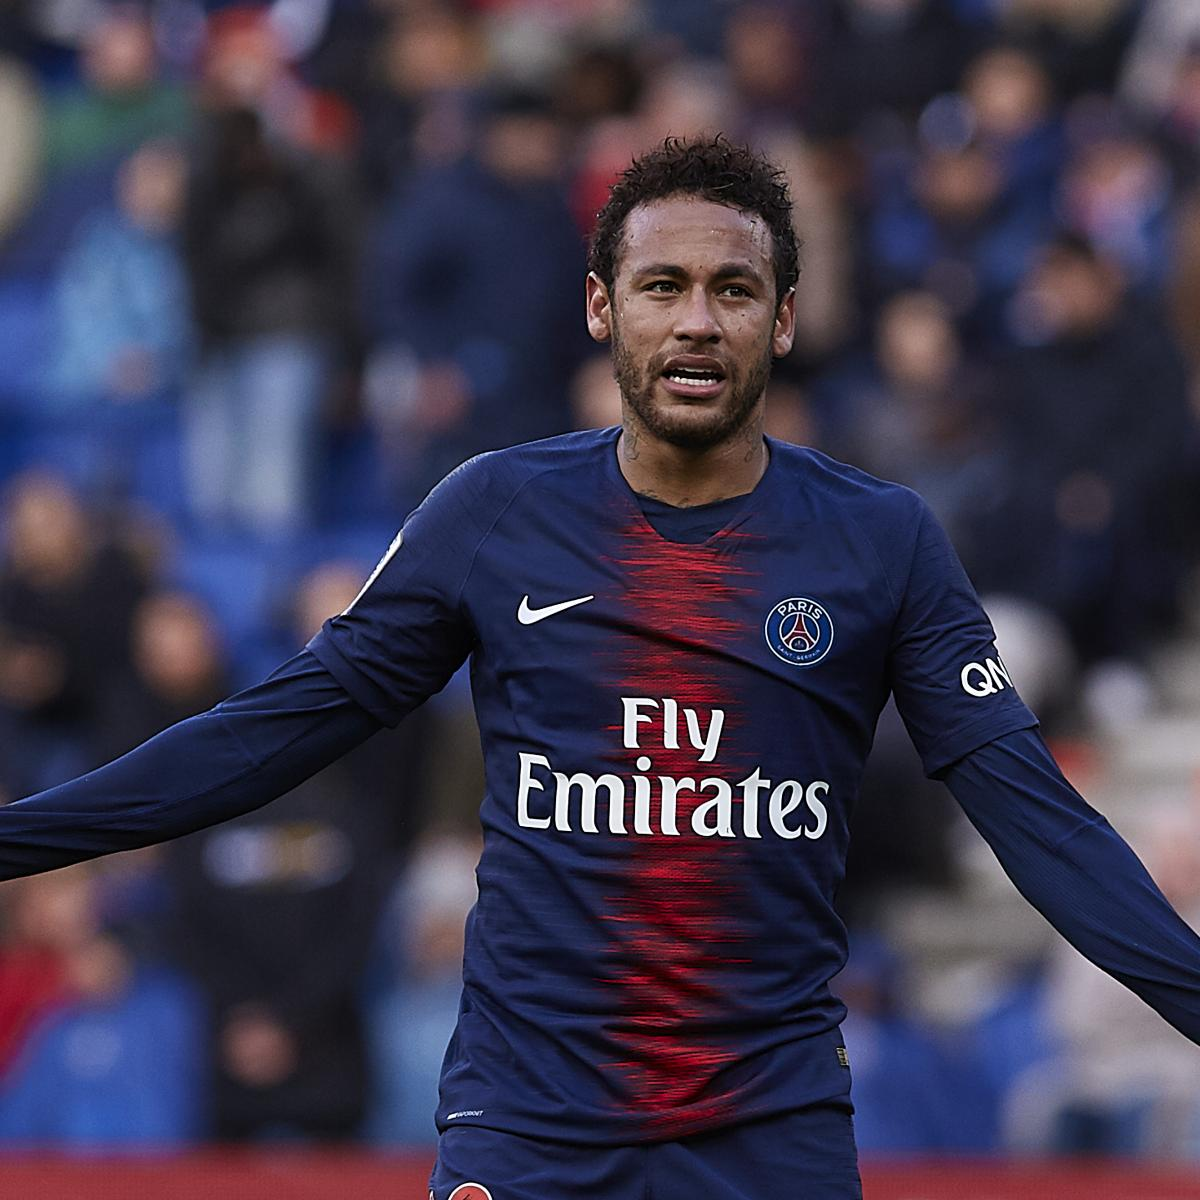 Neymar 'Does Not Have the Profile' to Be PSG Captain, Says Thomas Tuchel